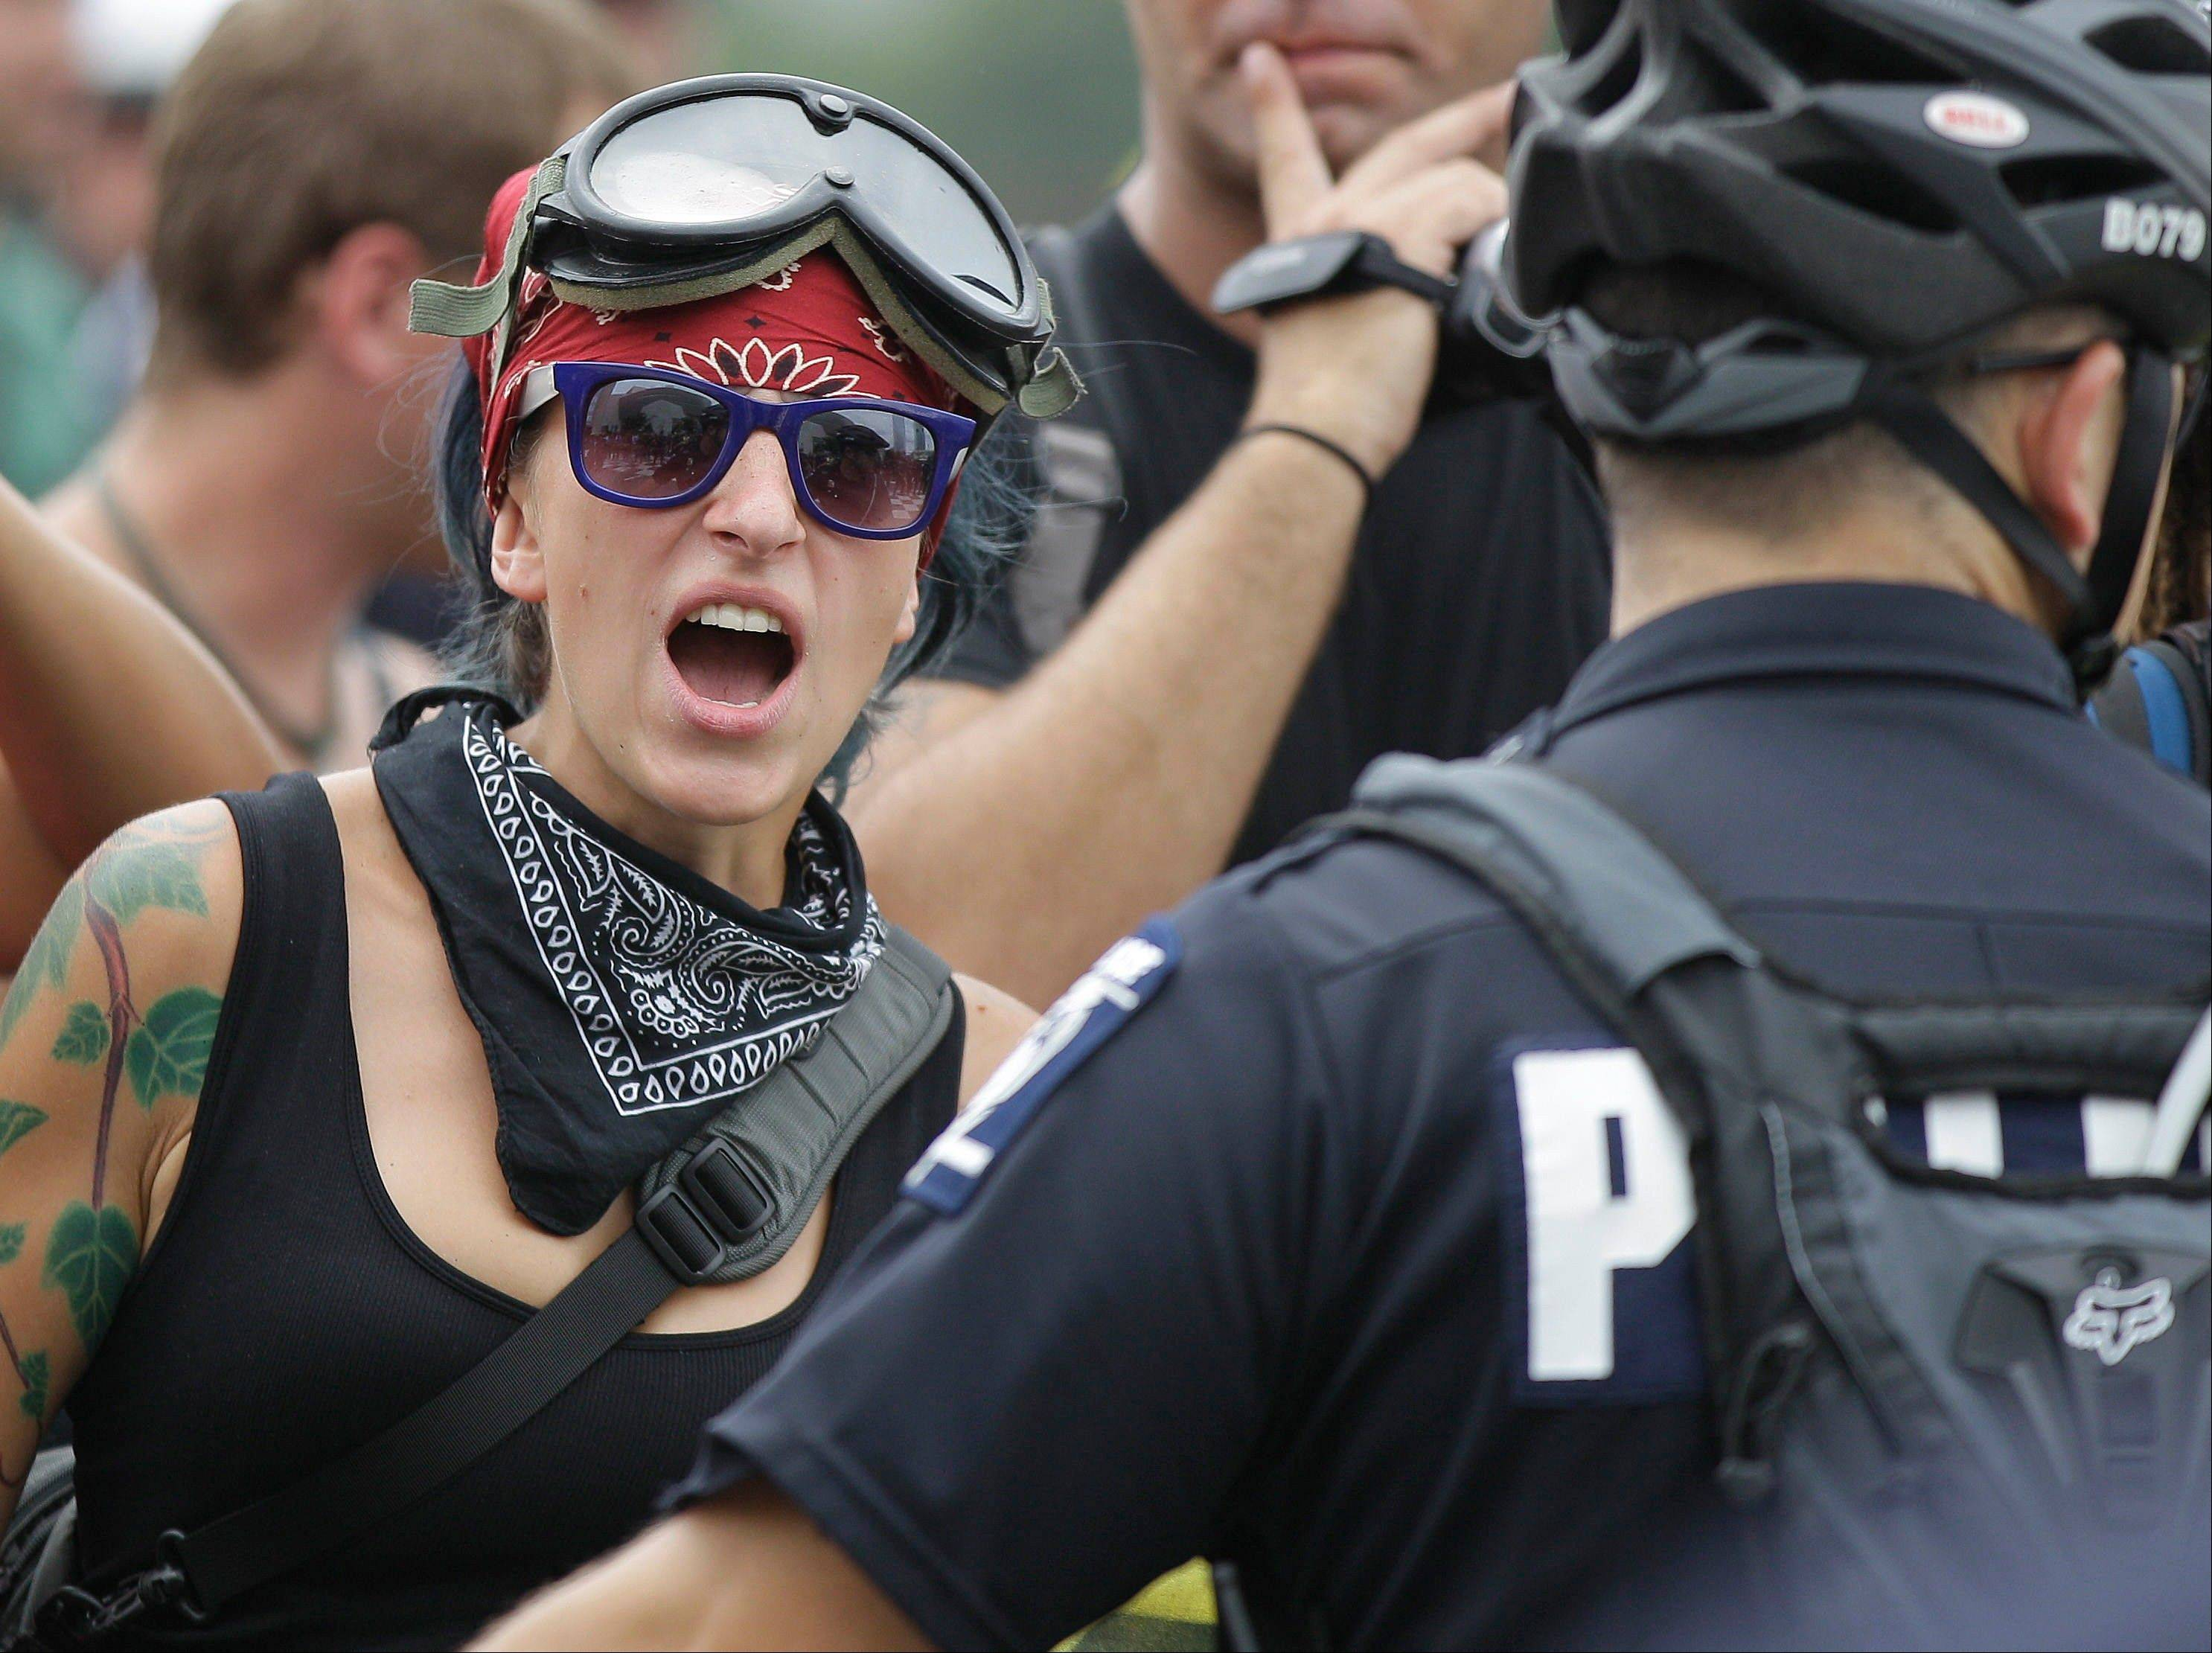 Occupy demonstrators shout at police during an unscheduled protest march Tuesday in Charlotte, N.C., where the Democratic National Convention was to begin in hours.